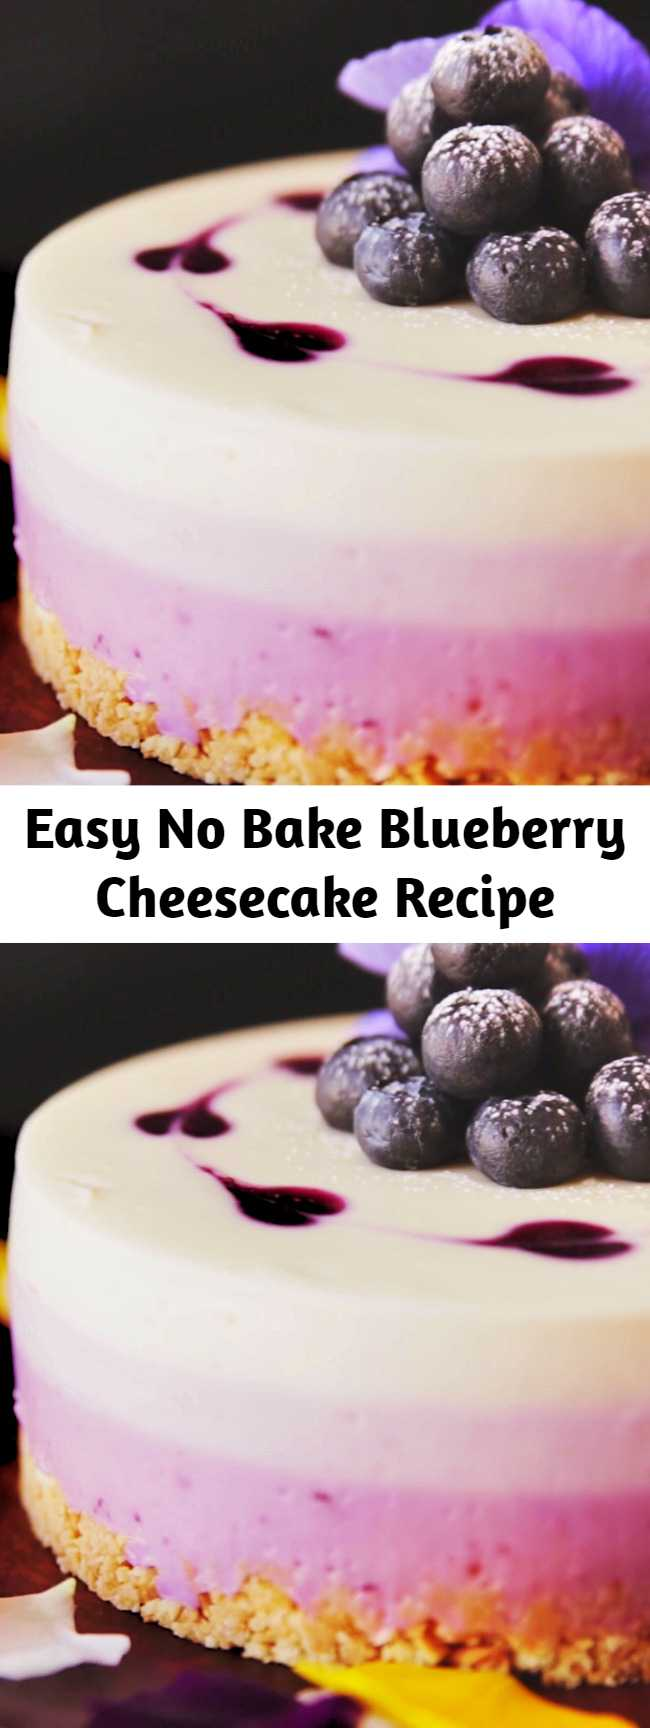 Easy No Bake Blueberry Cheesecake Recipe - Rich, velvety cheesecake combined with plump, ultra sweet blueberries makes for one of the most delectable desserts you'll ever eat. The best part? This beauty is no bake!